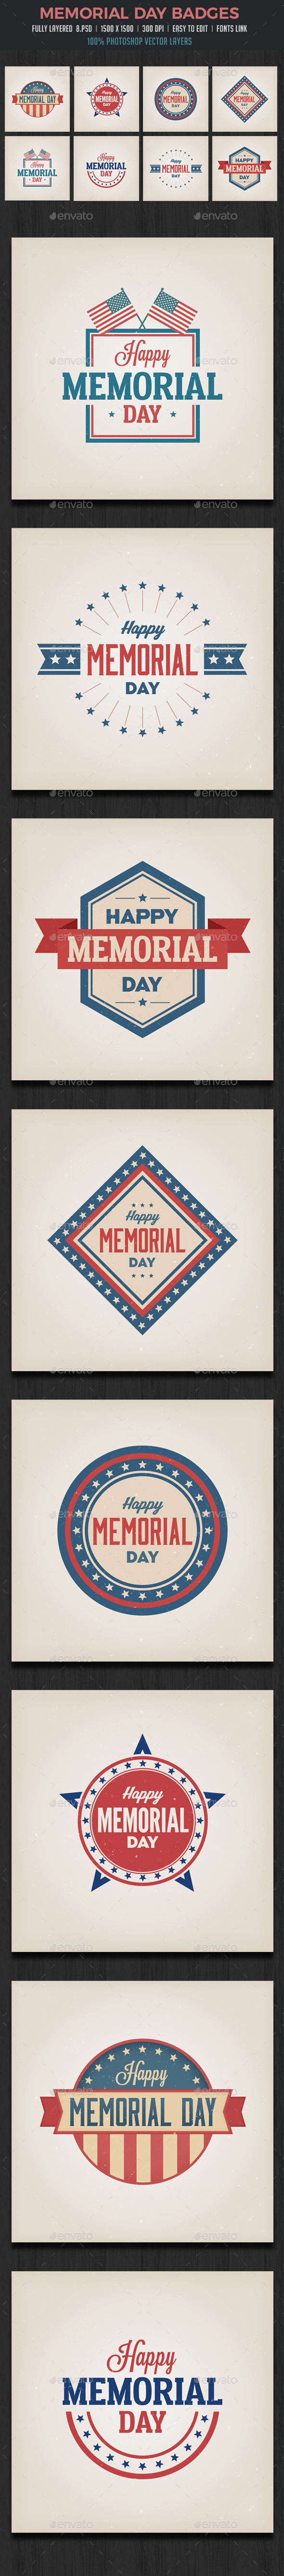 Memorial Day /  July 4th Badges - Badges & Stickers Web Elements